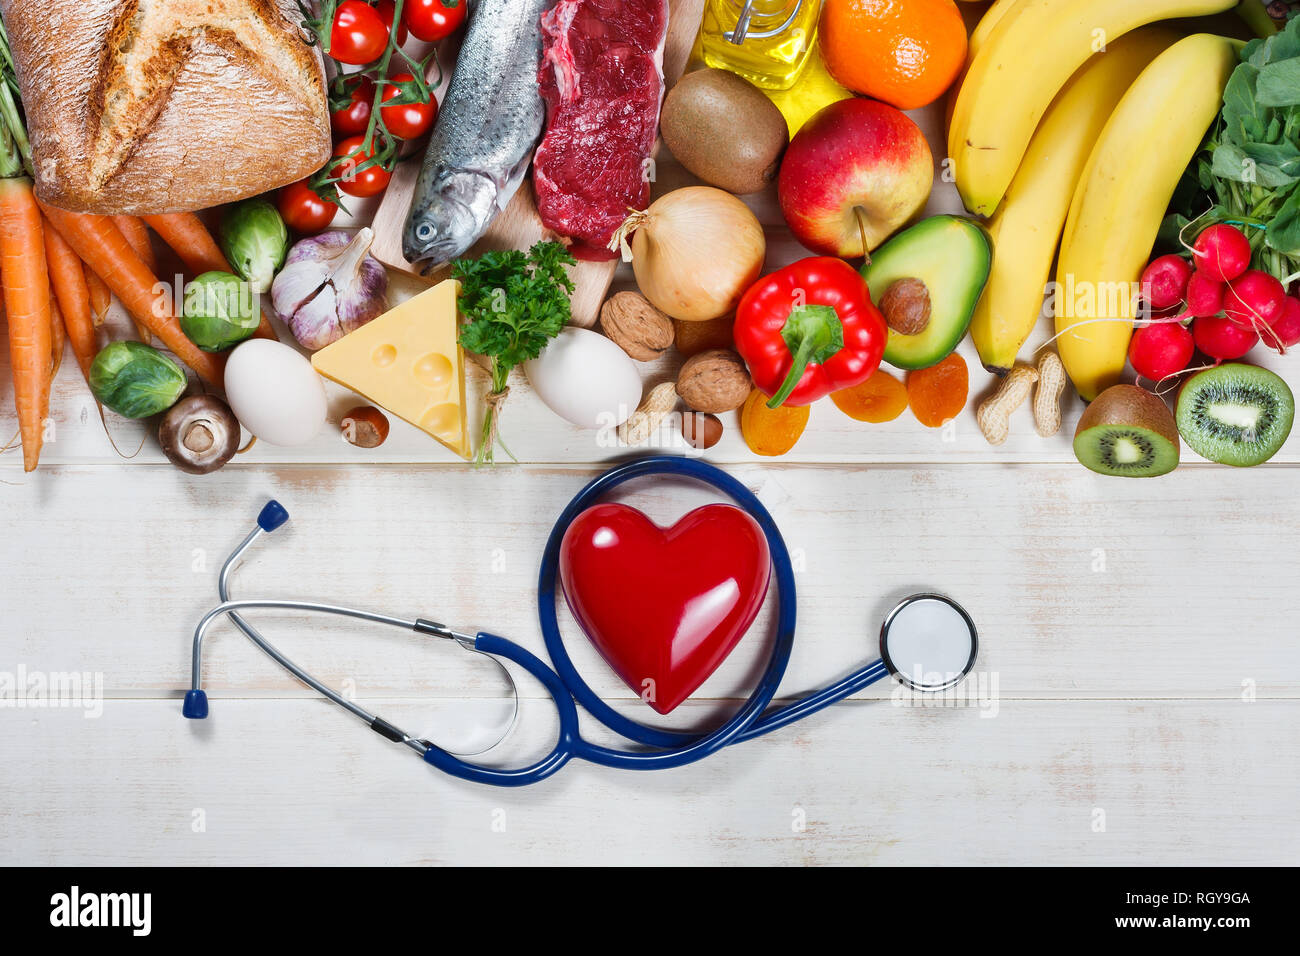 Healthy Lifestyle And Healthcare Concept Healthy Food Heart And Stethoscope Stock Photo Alamy